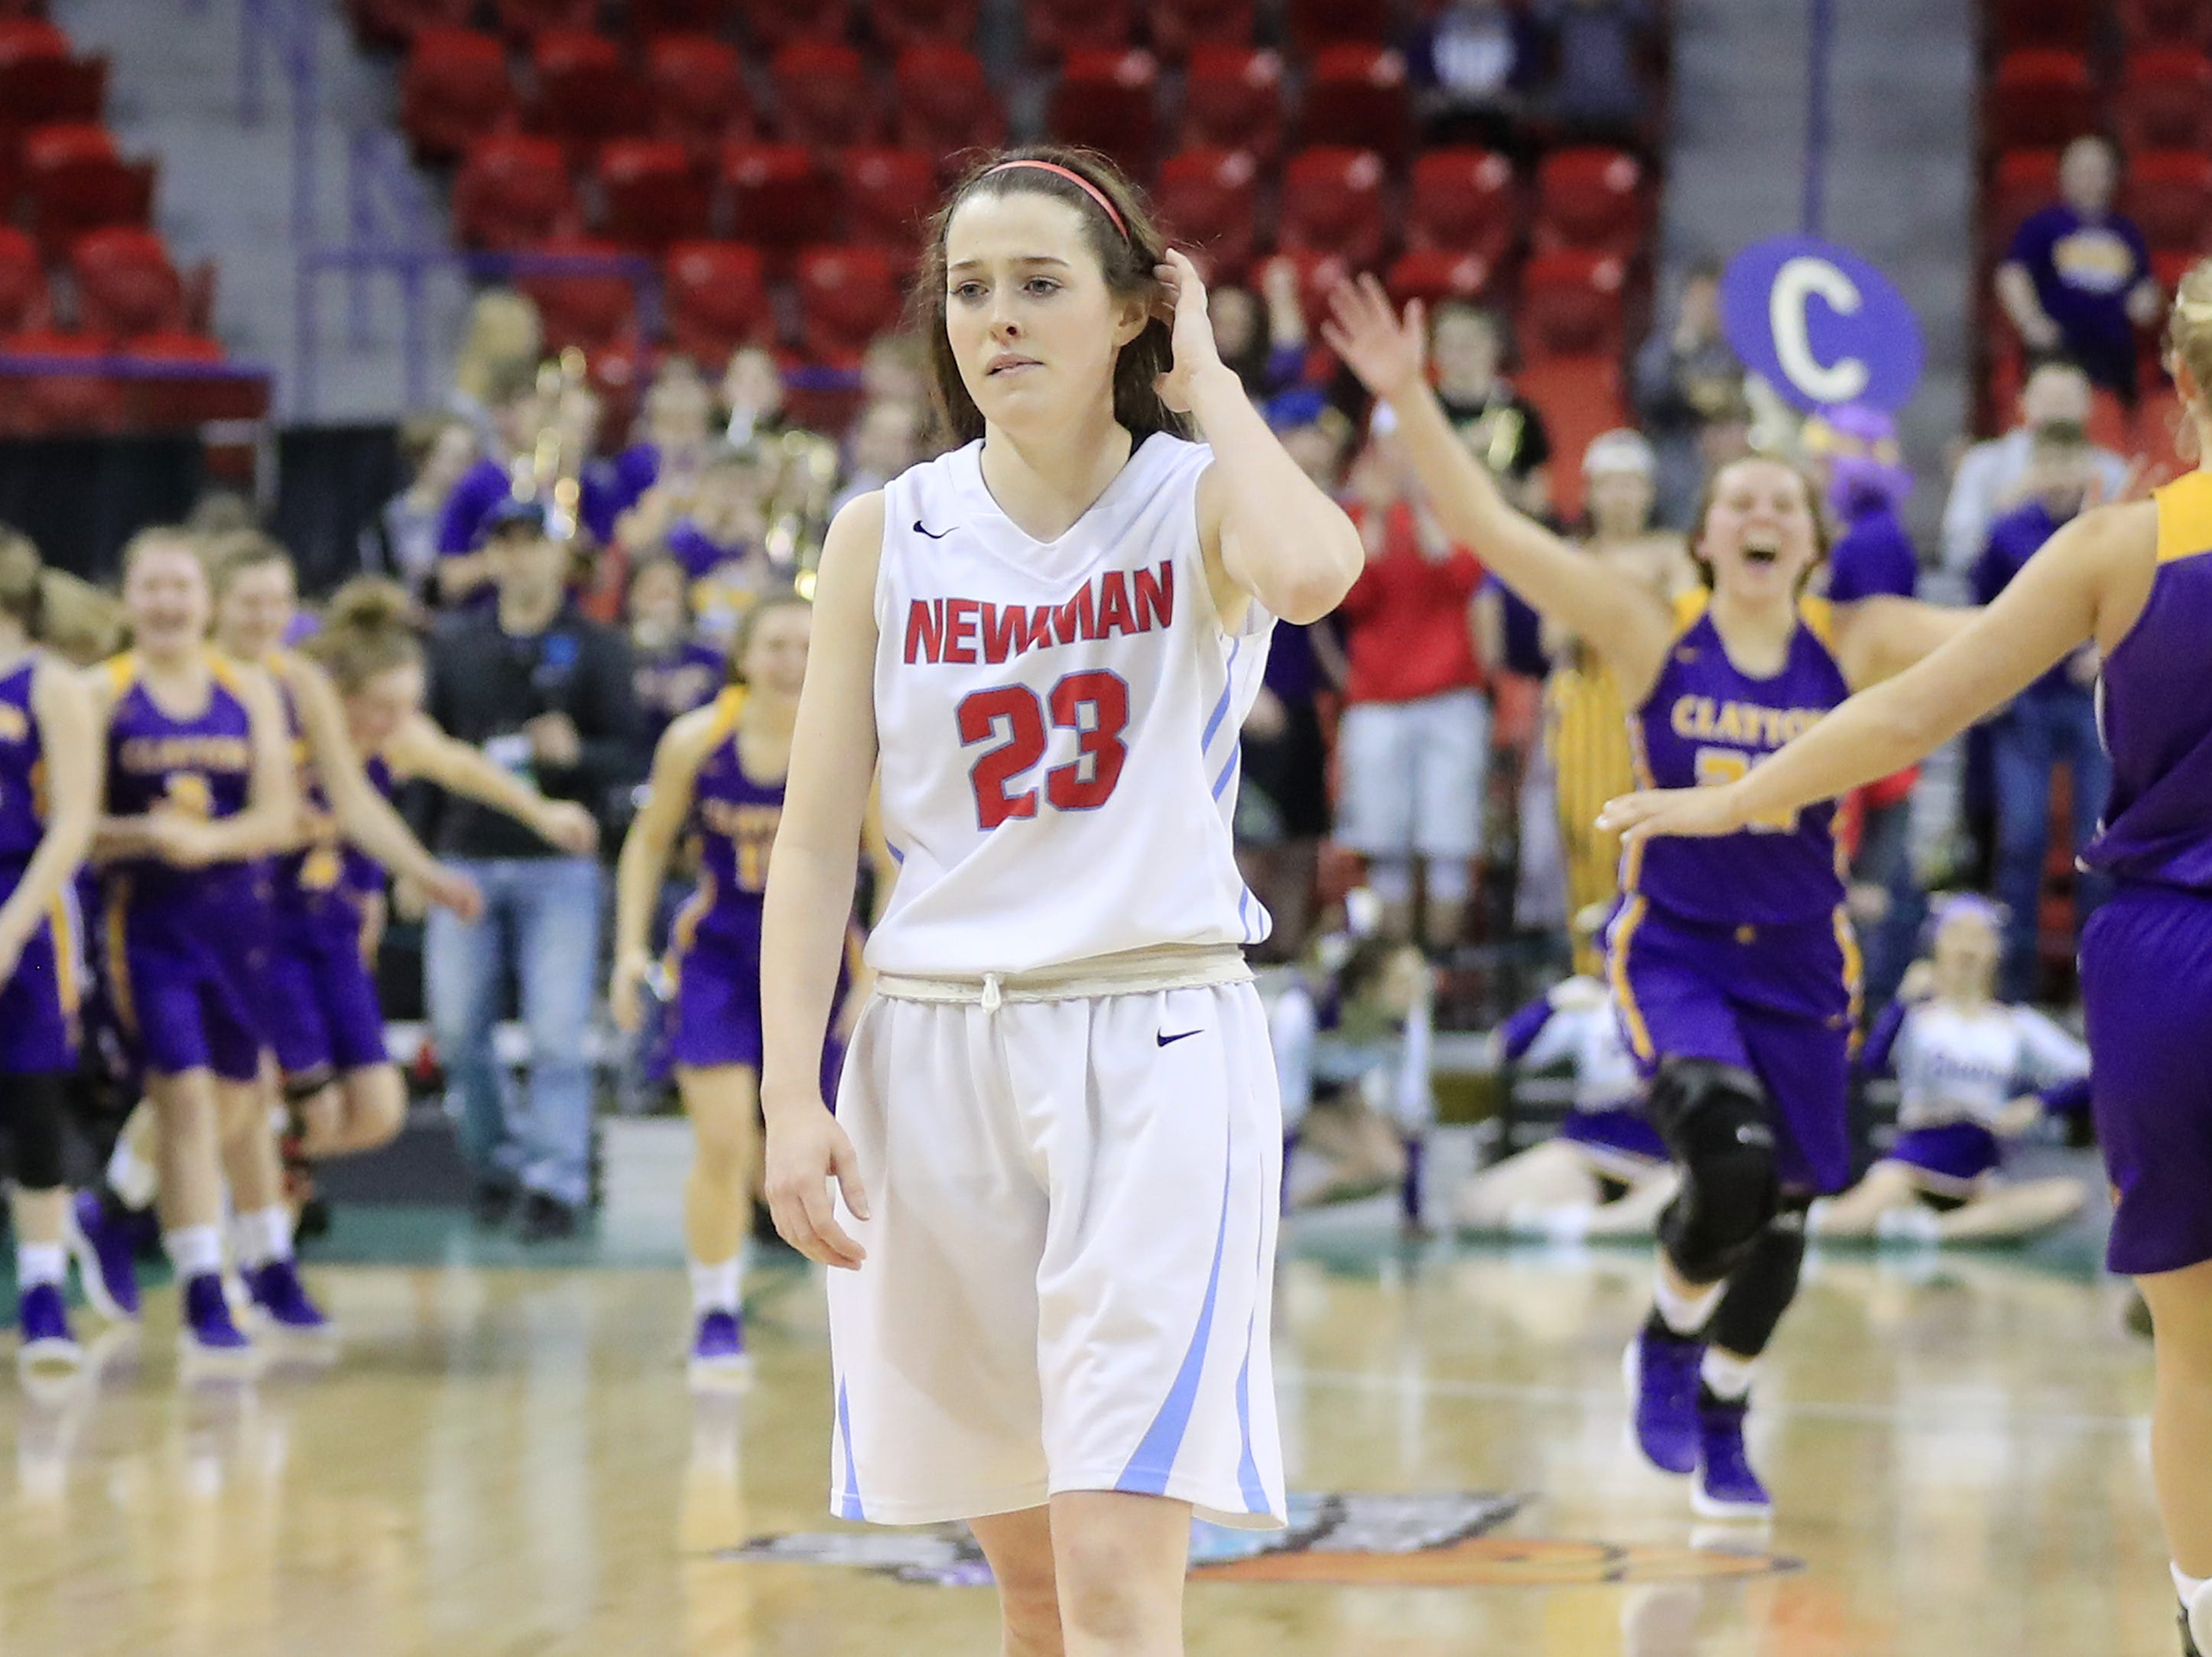 Wausau Newman Catholic's Lauren Shields (23) walks off the court after the Cardinals lost to Clayton in a Division 5 semifinal at the WIAA state girls basketball tournament at the Resch Center on Friday, March 8, 2019 in Ashwaubenon, Wis. Adam Wesley/USA TODAY NETWORK-Wisconsin